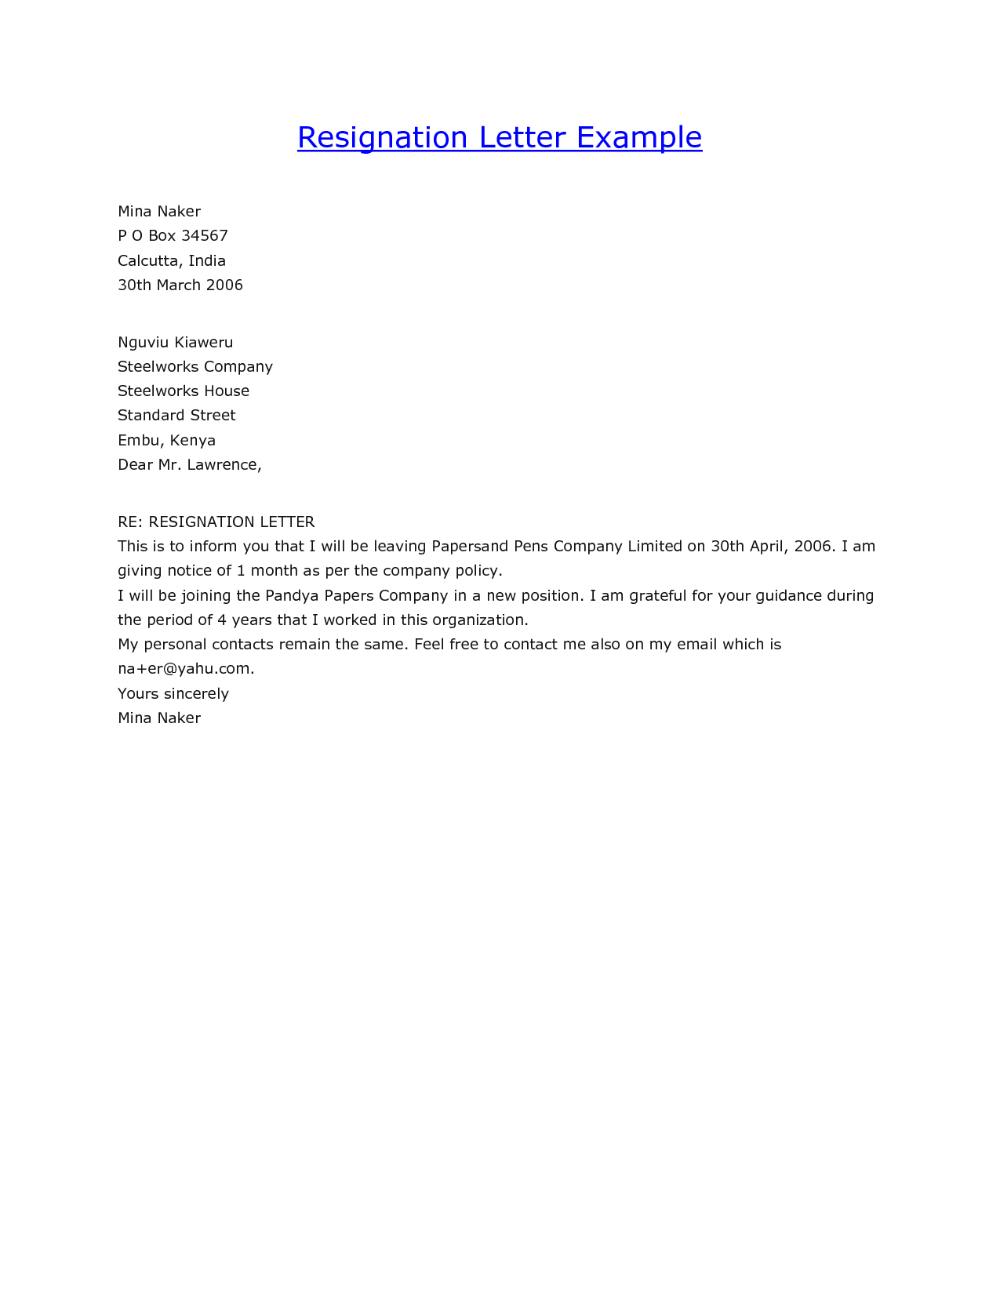 Copy Of Resignation Letter Examples Guatemalago Throughout Standard Resignation Letter Template 10 Prof Letter Example Resignation Letter Job Cover Letter